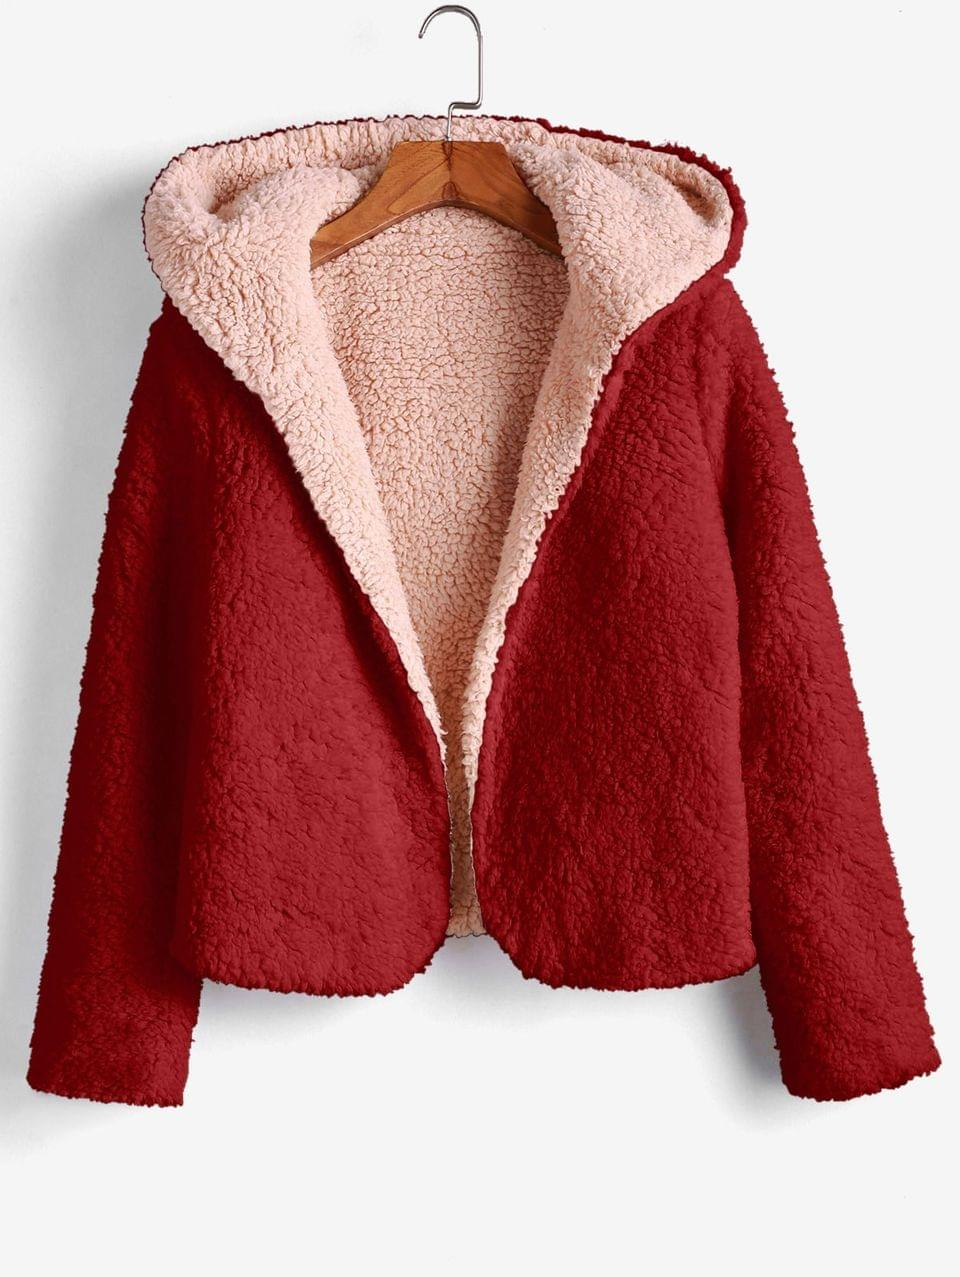 Women's X Alexis Ricecakes Hooded Reversible Teddy Coat - Firebrick M